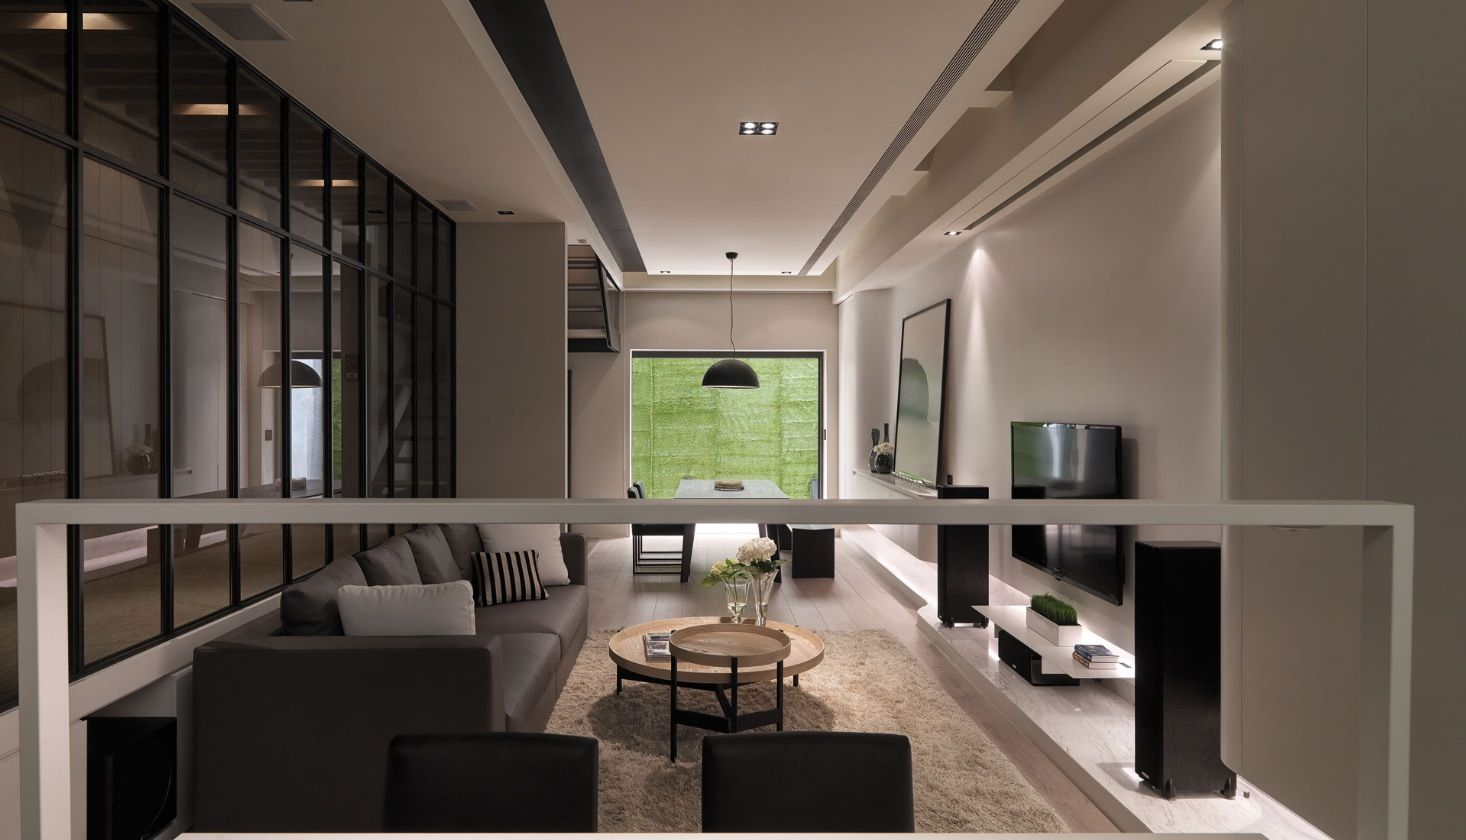 Contemporary Designs For Living Room Unique Contemporary Loft Style Apartment Design Makes You Feel Stunning 2018